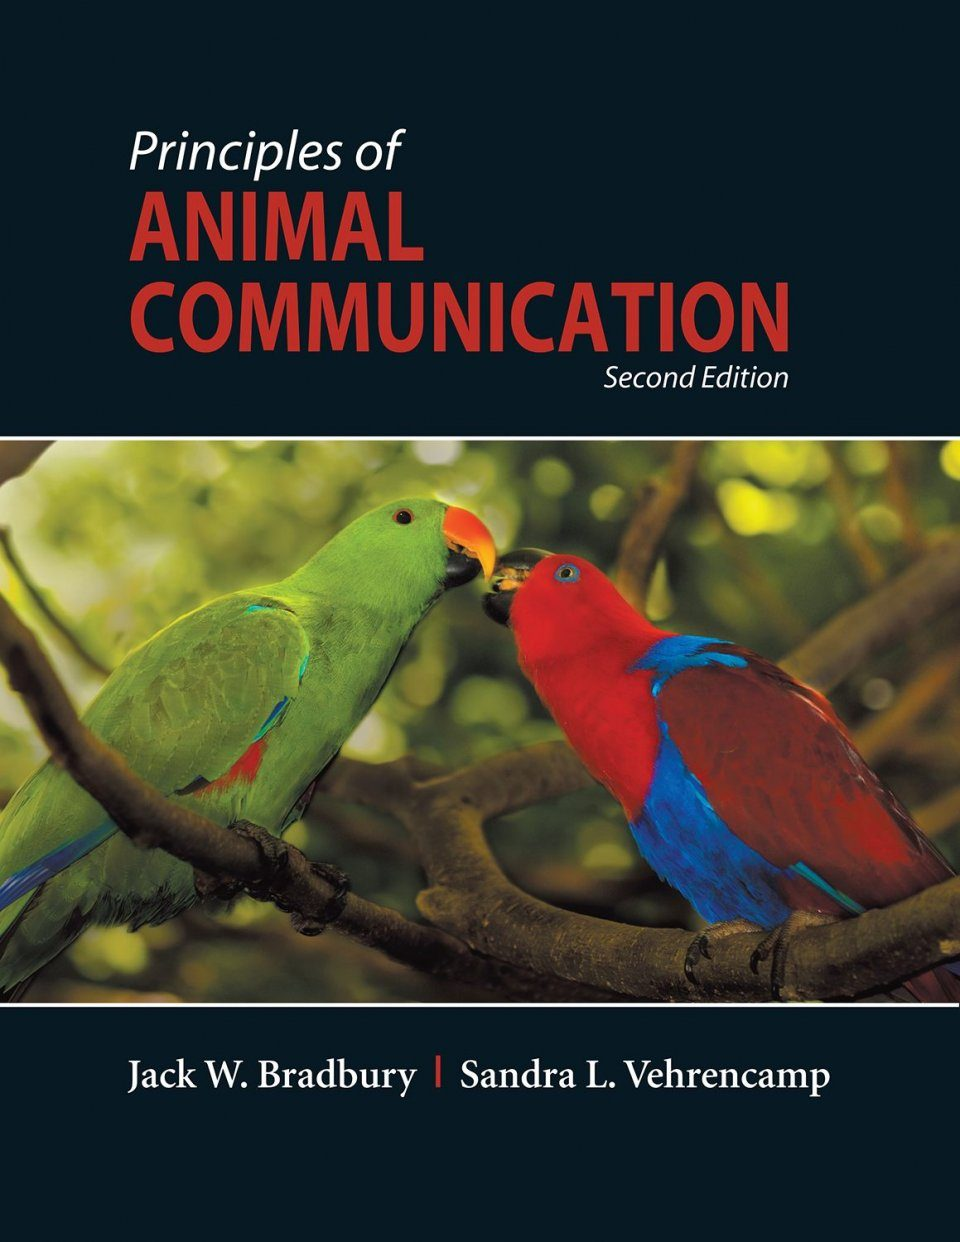 Principles of Animal Communication